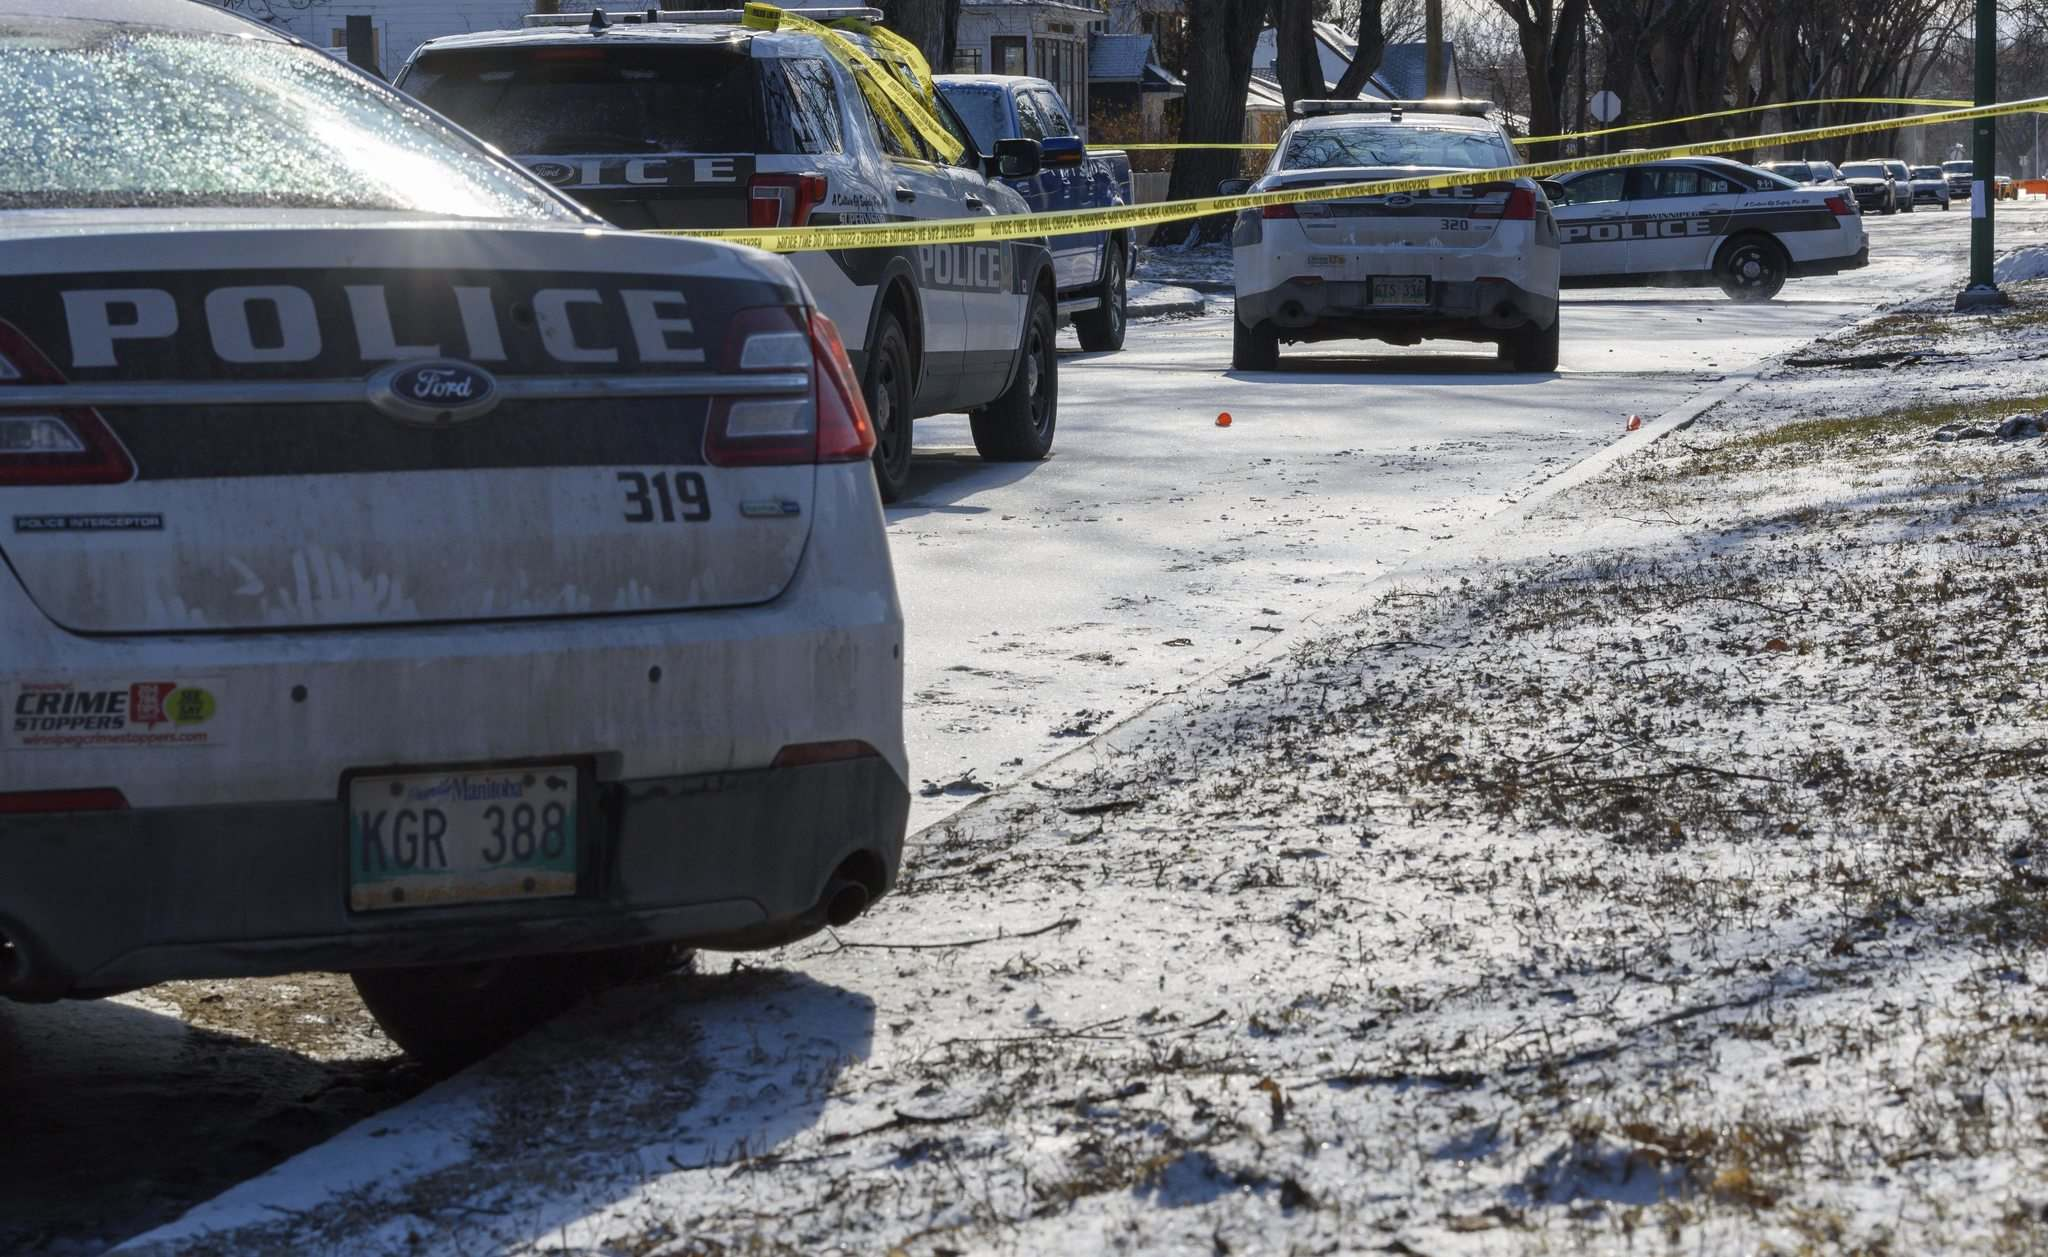 Jason Collins was shot and killed by police responding to a domestic disturbance on Anderson Avenue. (Jesse Boily / Winnipeg Free Press files)